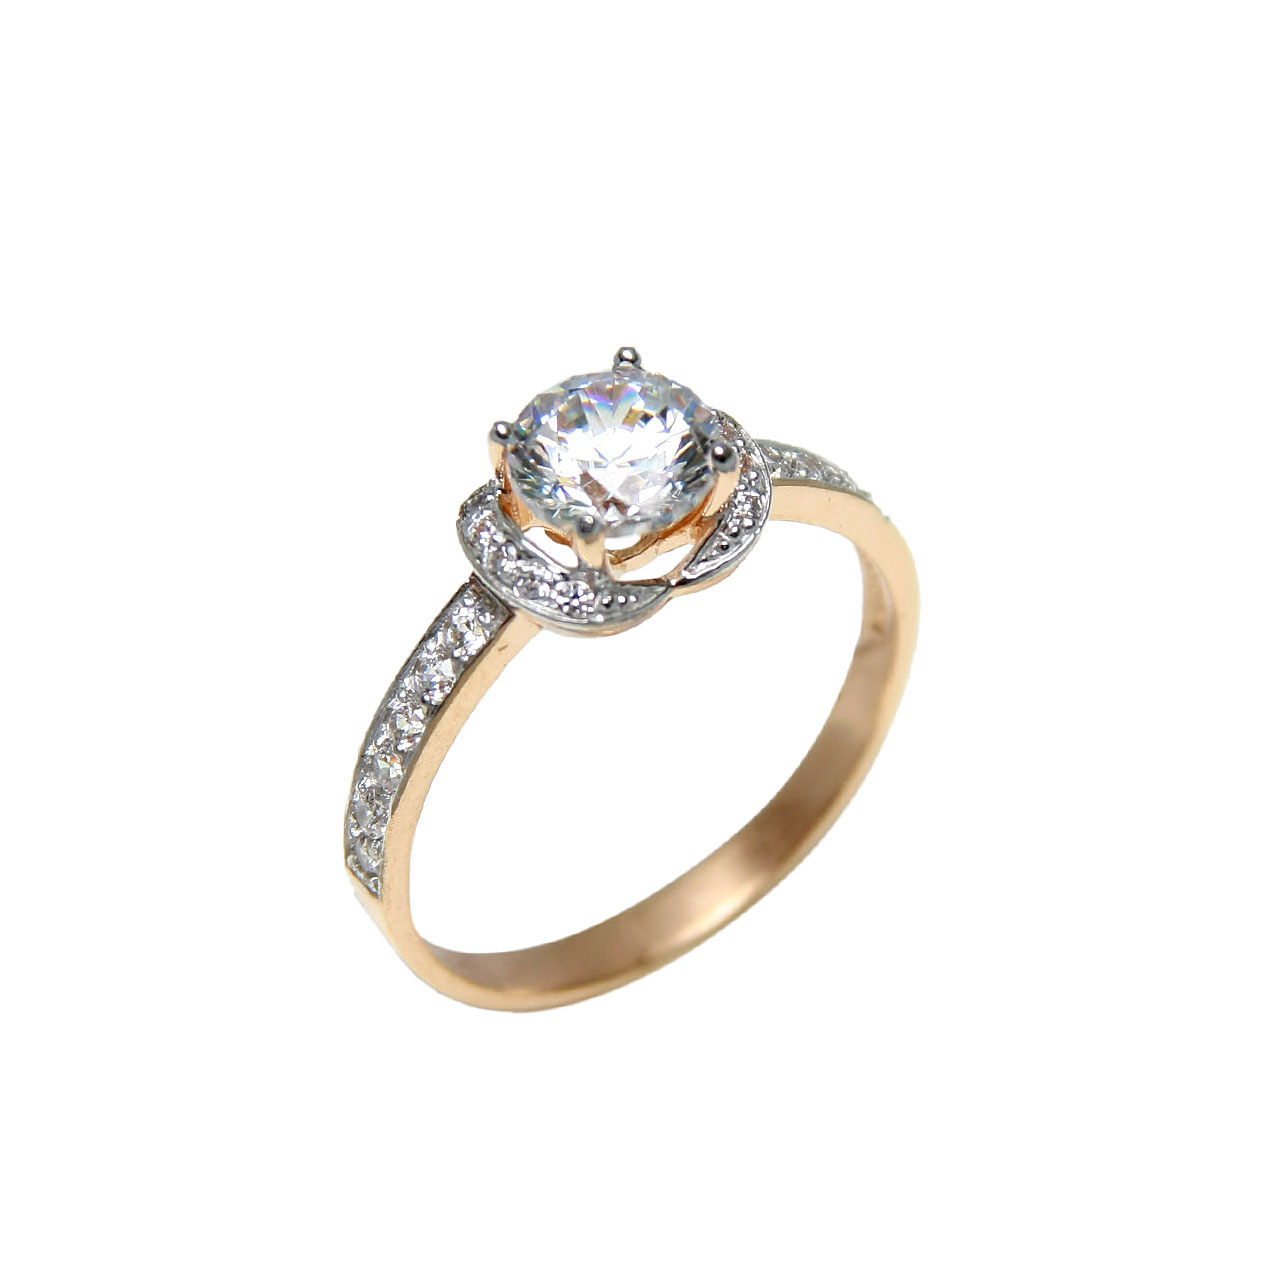 CZ engagement ring 1